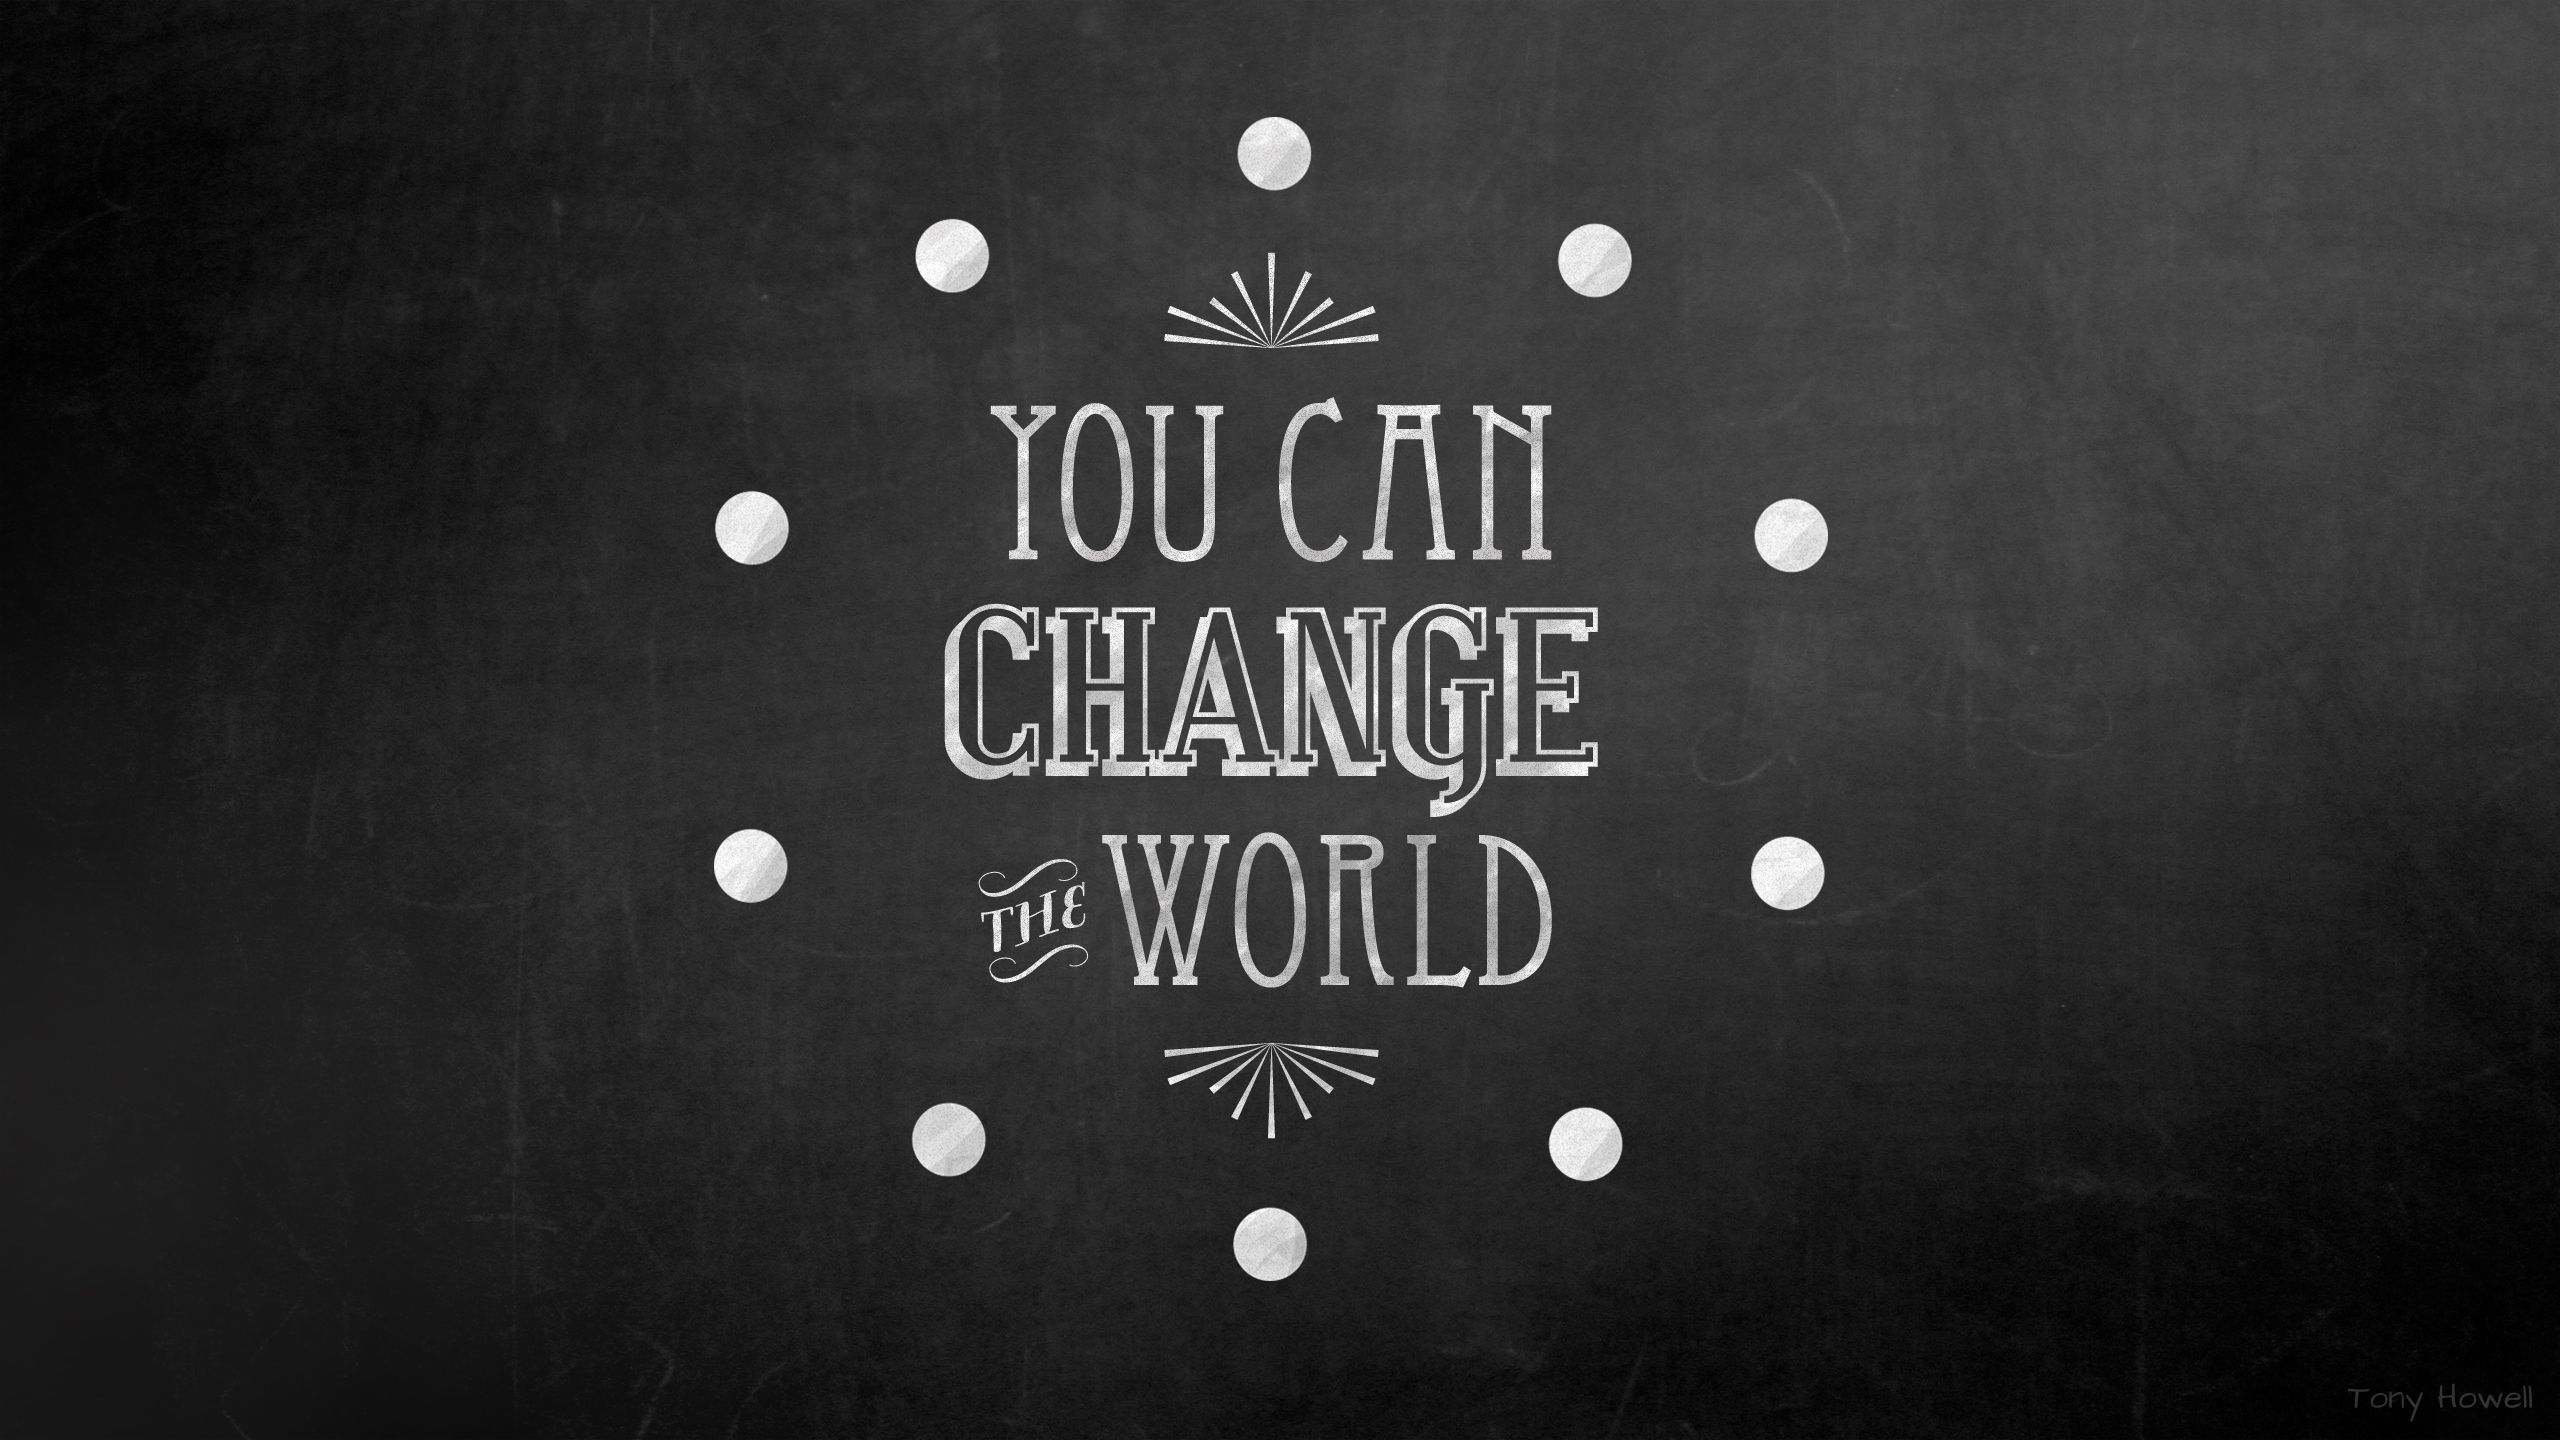 You Can Change the World desktop wallpaper quote